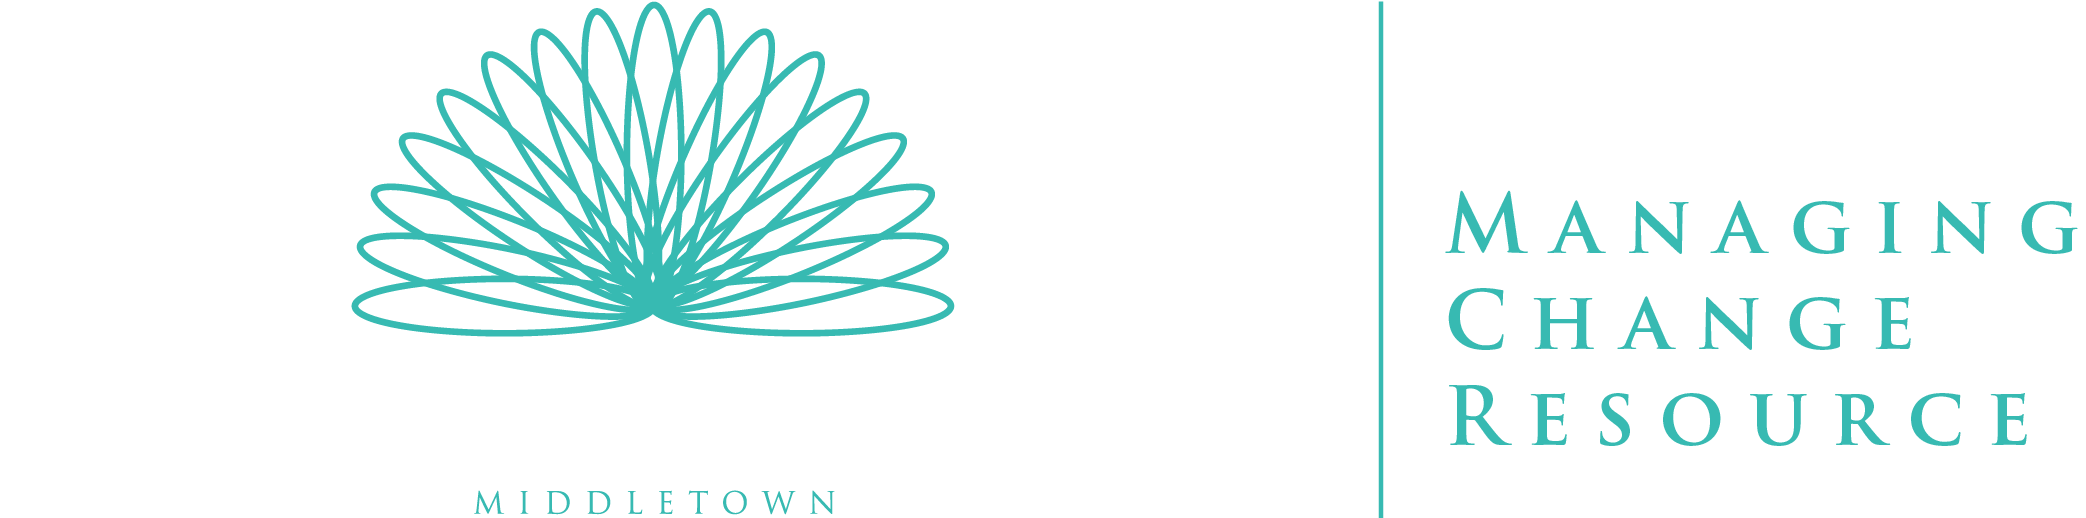 Middletown Centre for Autism Capacity Resource logo